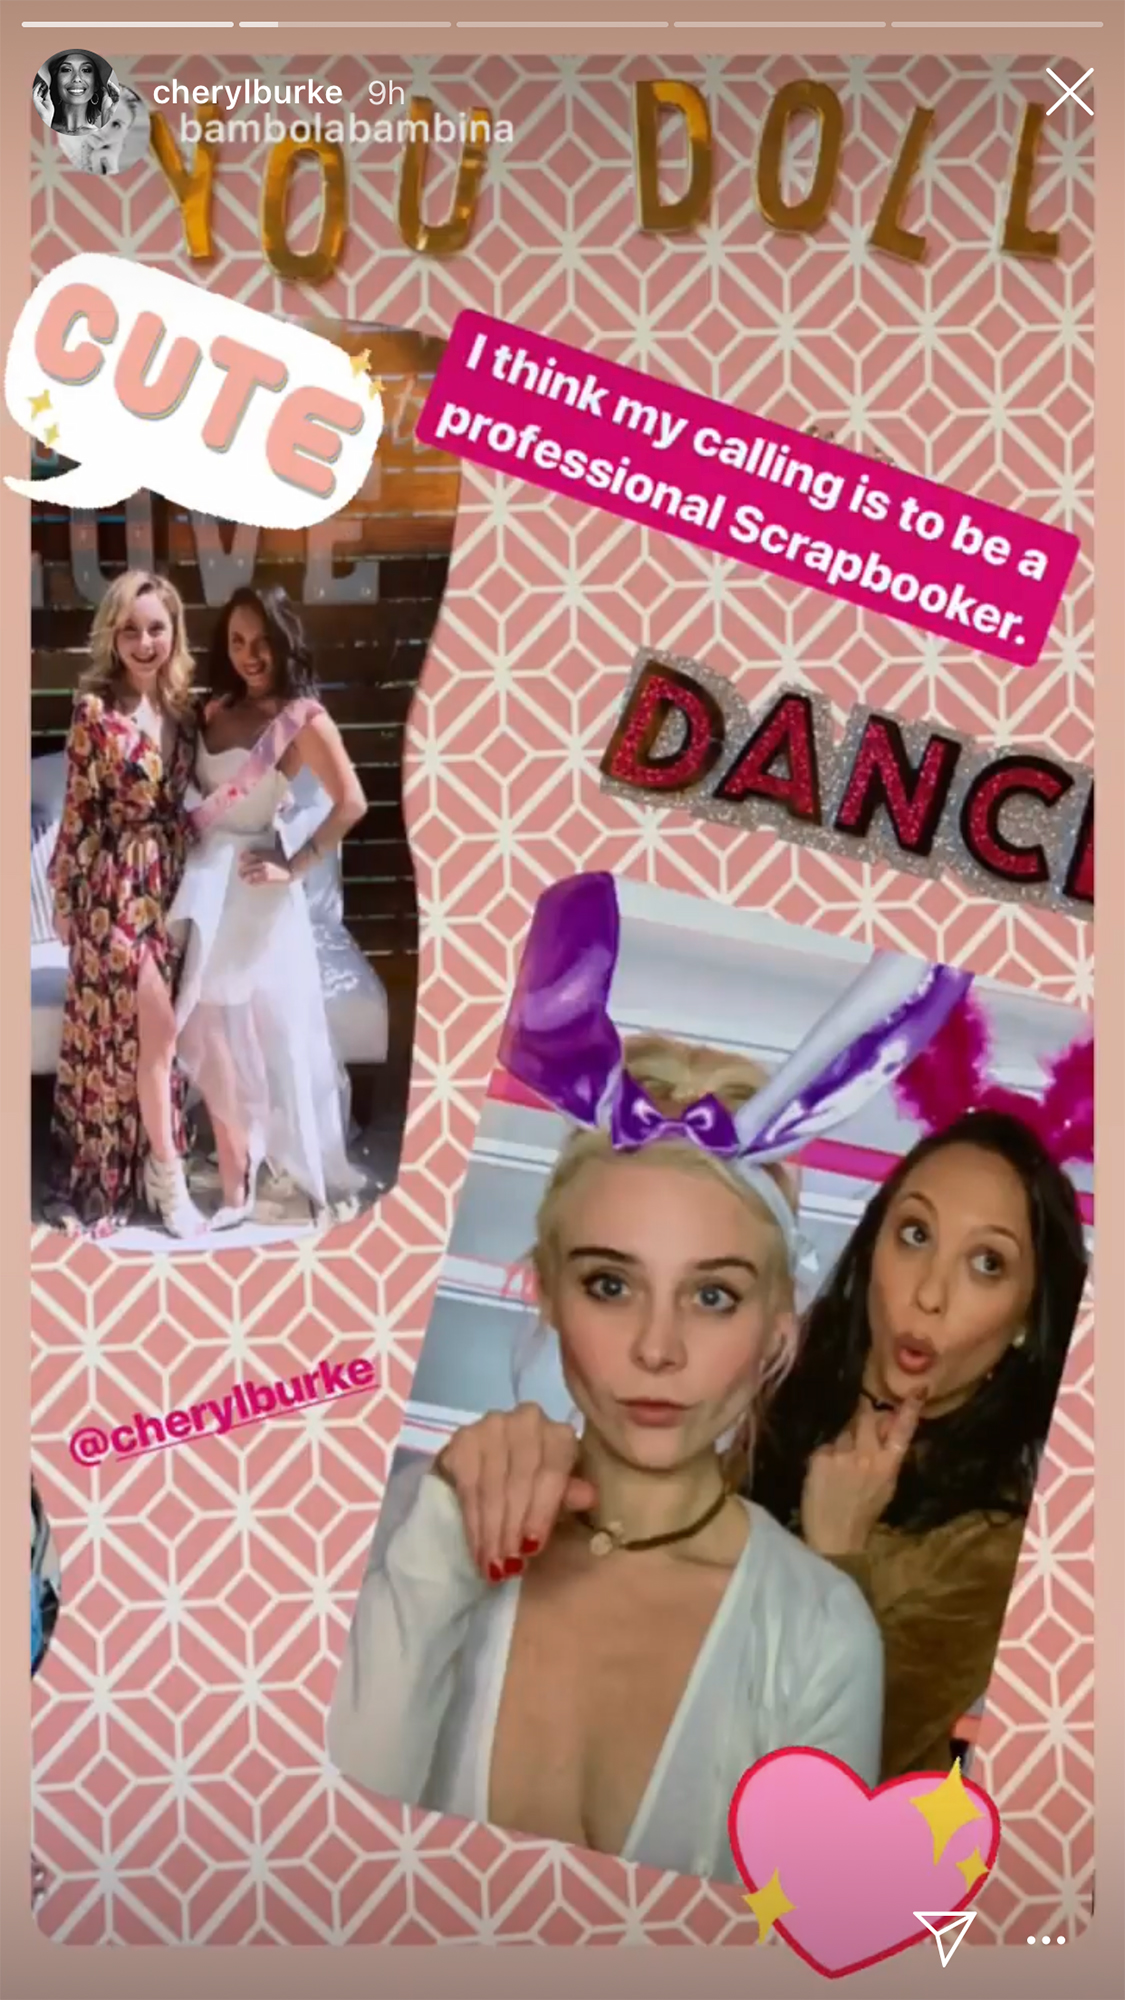 Cheryl Burke Celebrates Bridal Shower at 'Matron of Honor' Leah Remini's House Ahead of Wedding to Fiance Matthew Lawrence - The reality star wore a strapless white dress for the party.